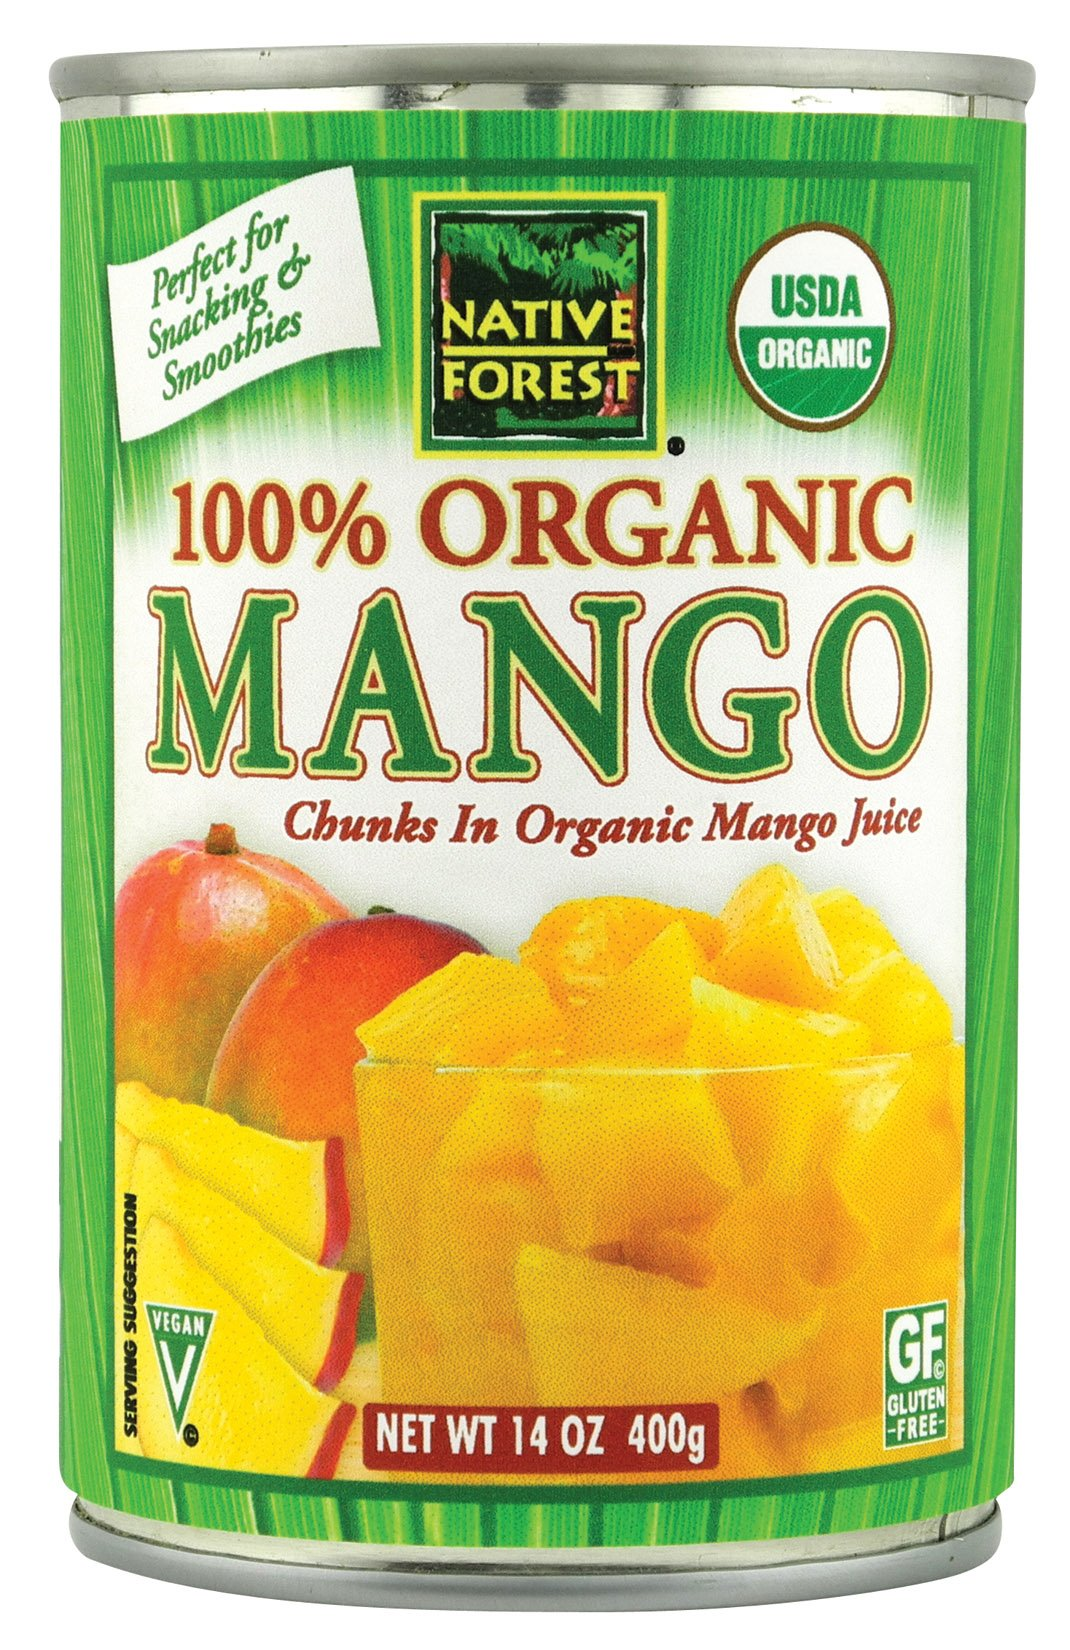 Native Forest Organic Mango Chunks, 14-Ounce Cans (Pack of 6) by Native Forest